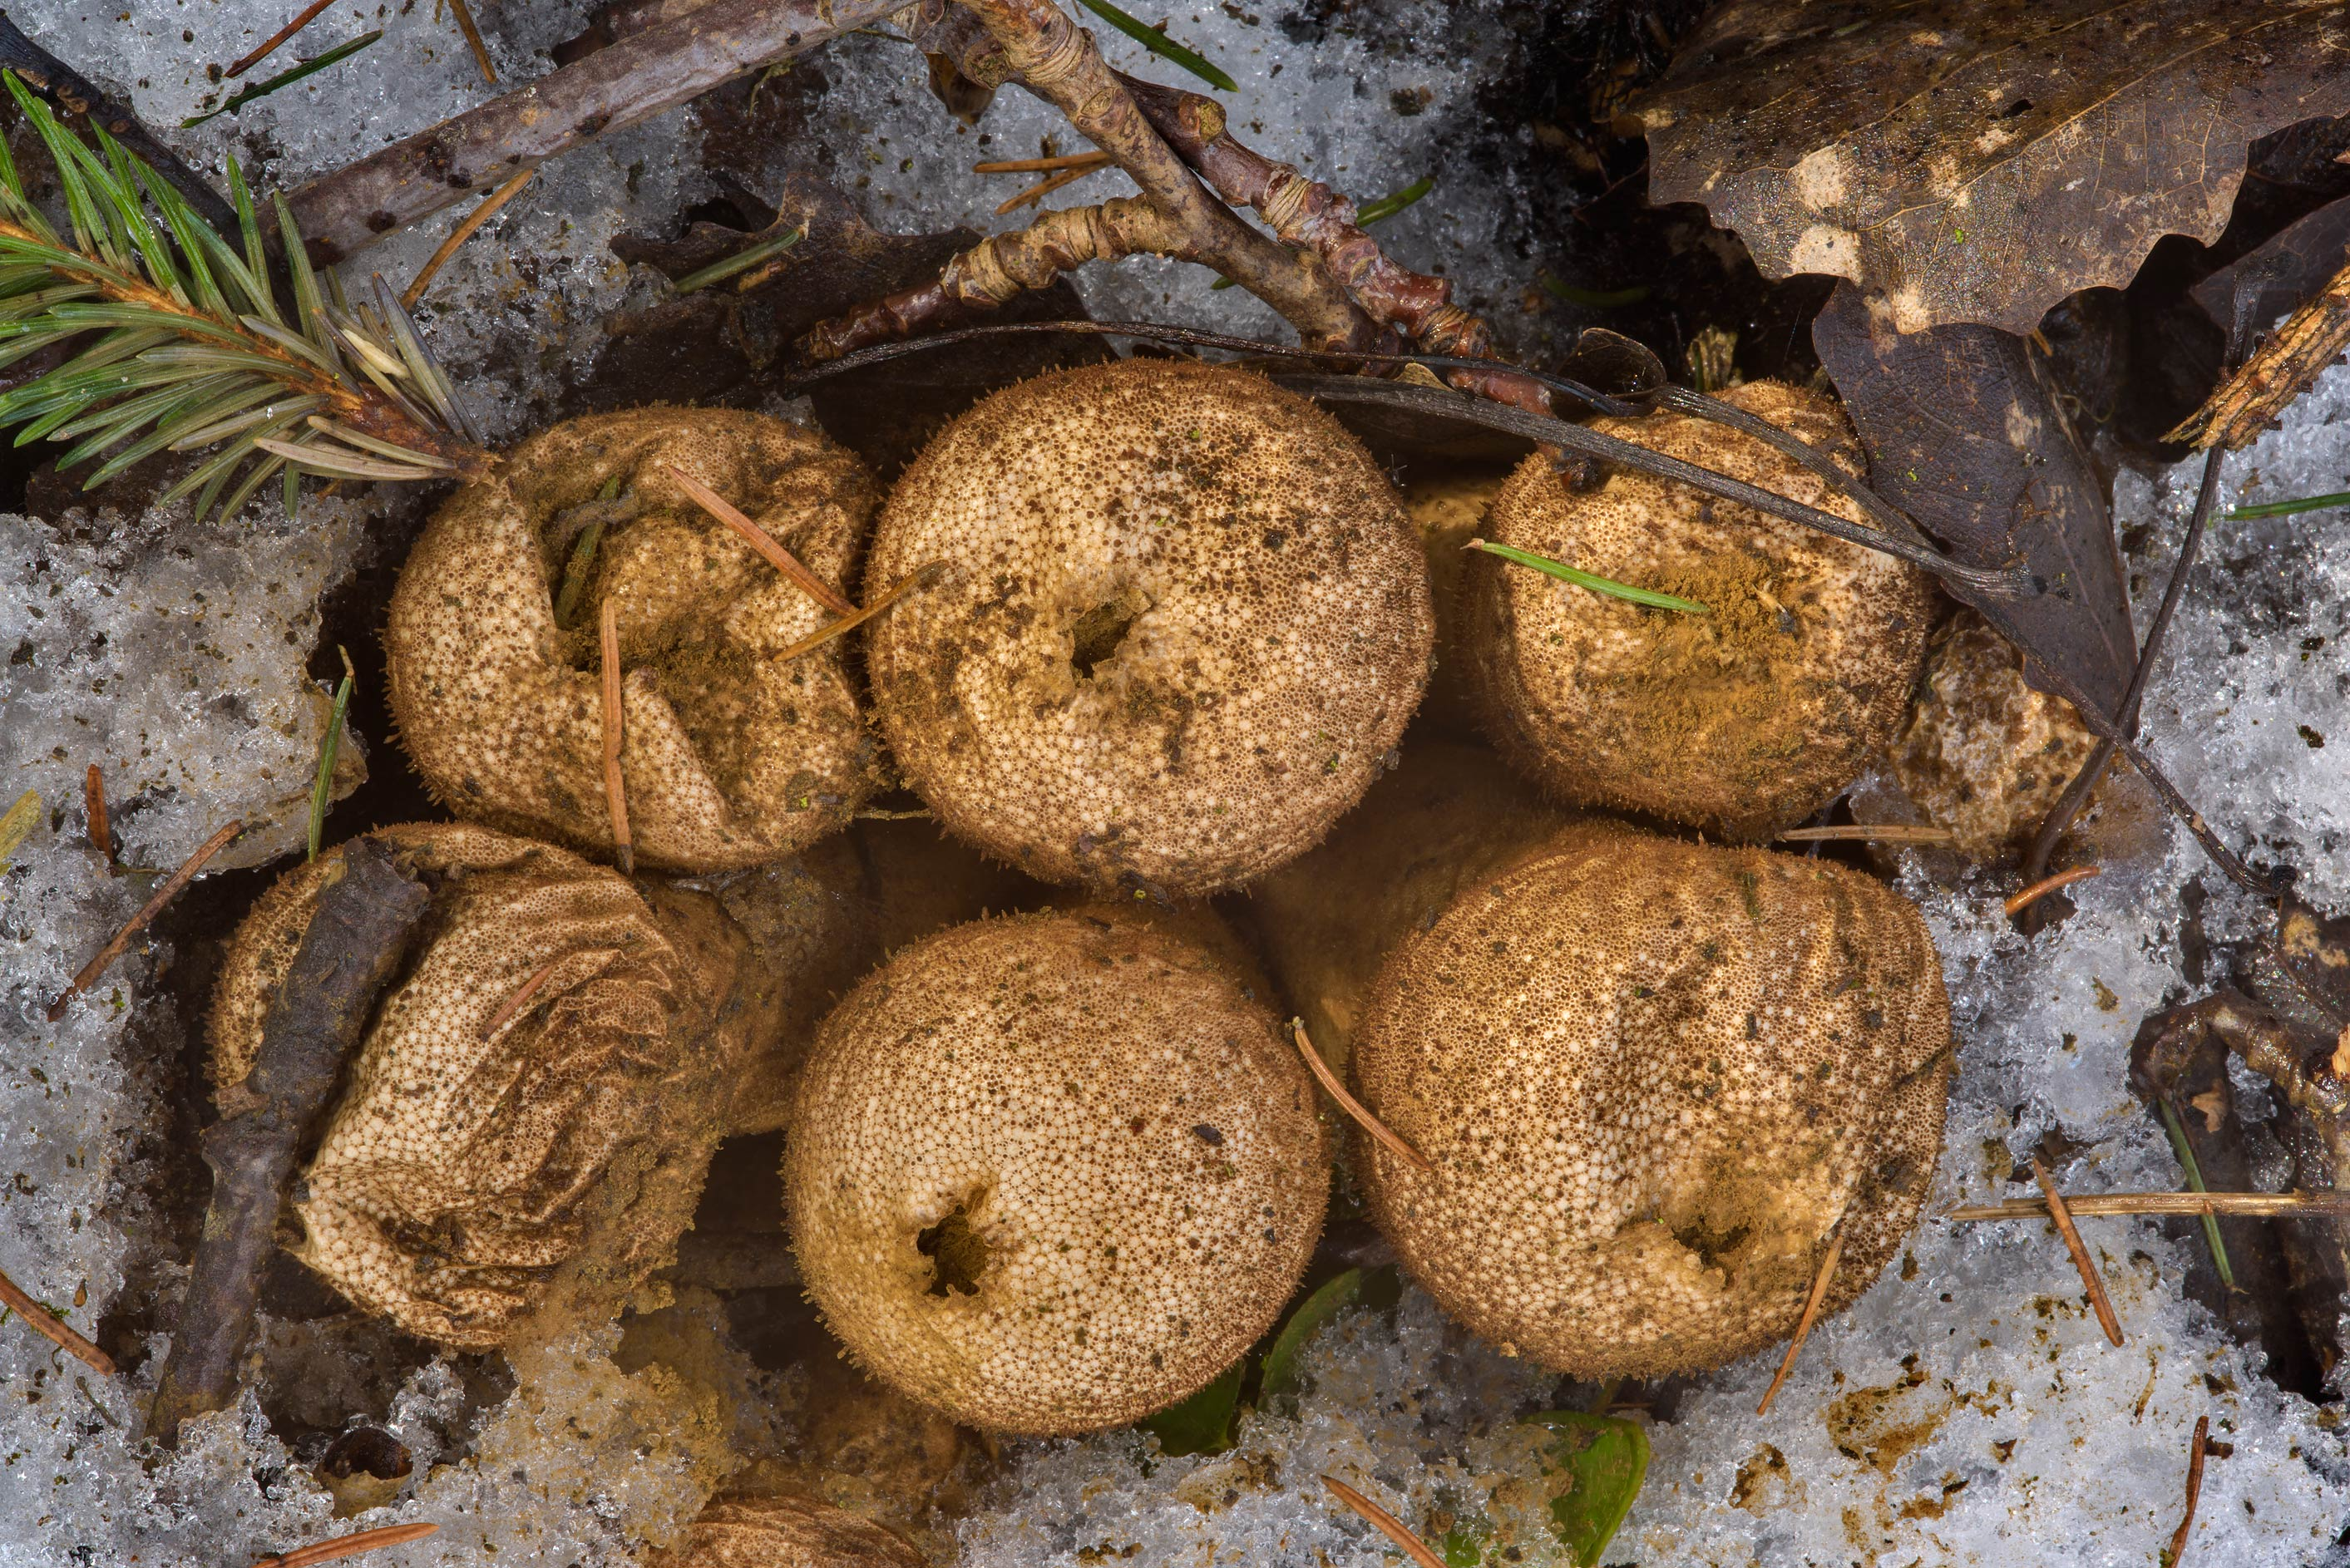 Old spiked puffball mushrooms (Lycoperdon...Park. St.Petersburg, Russia